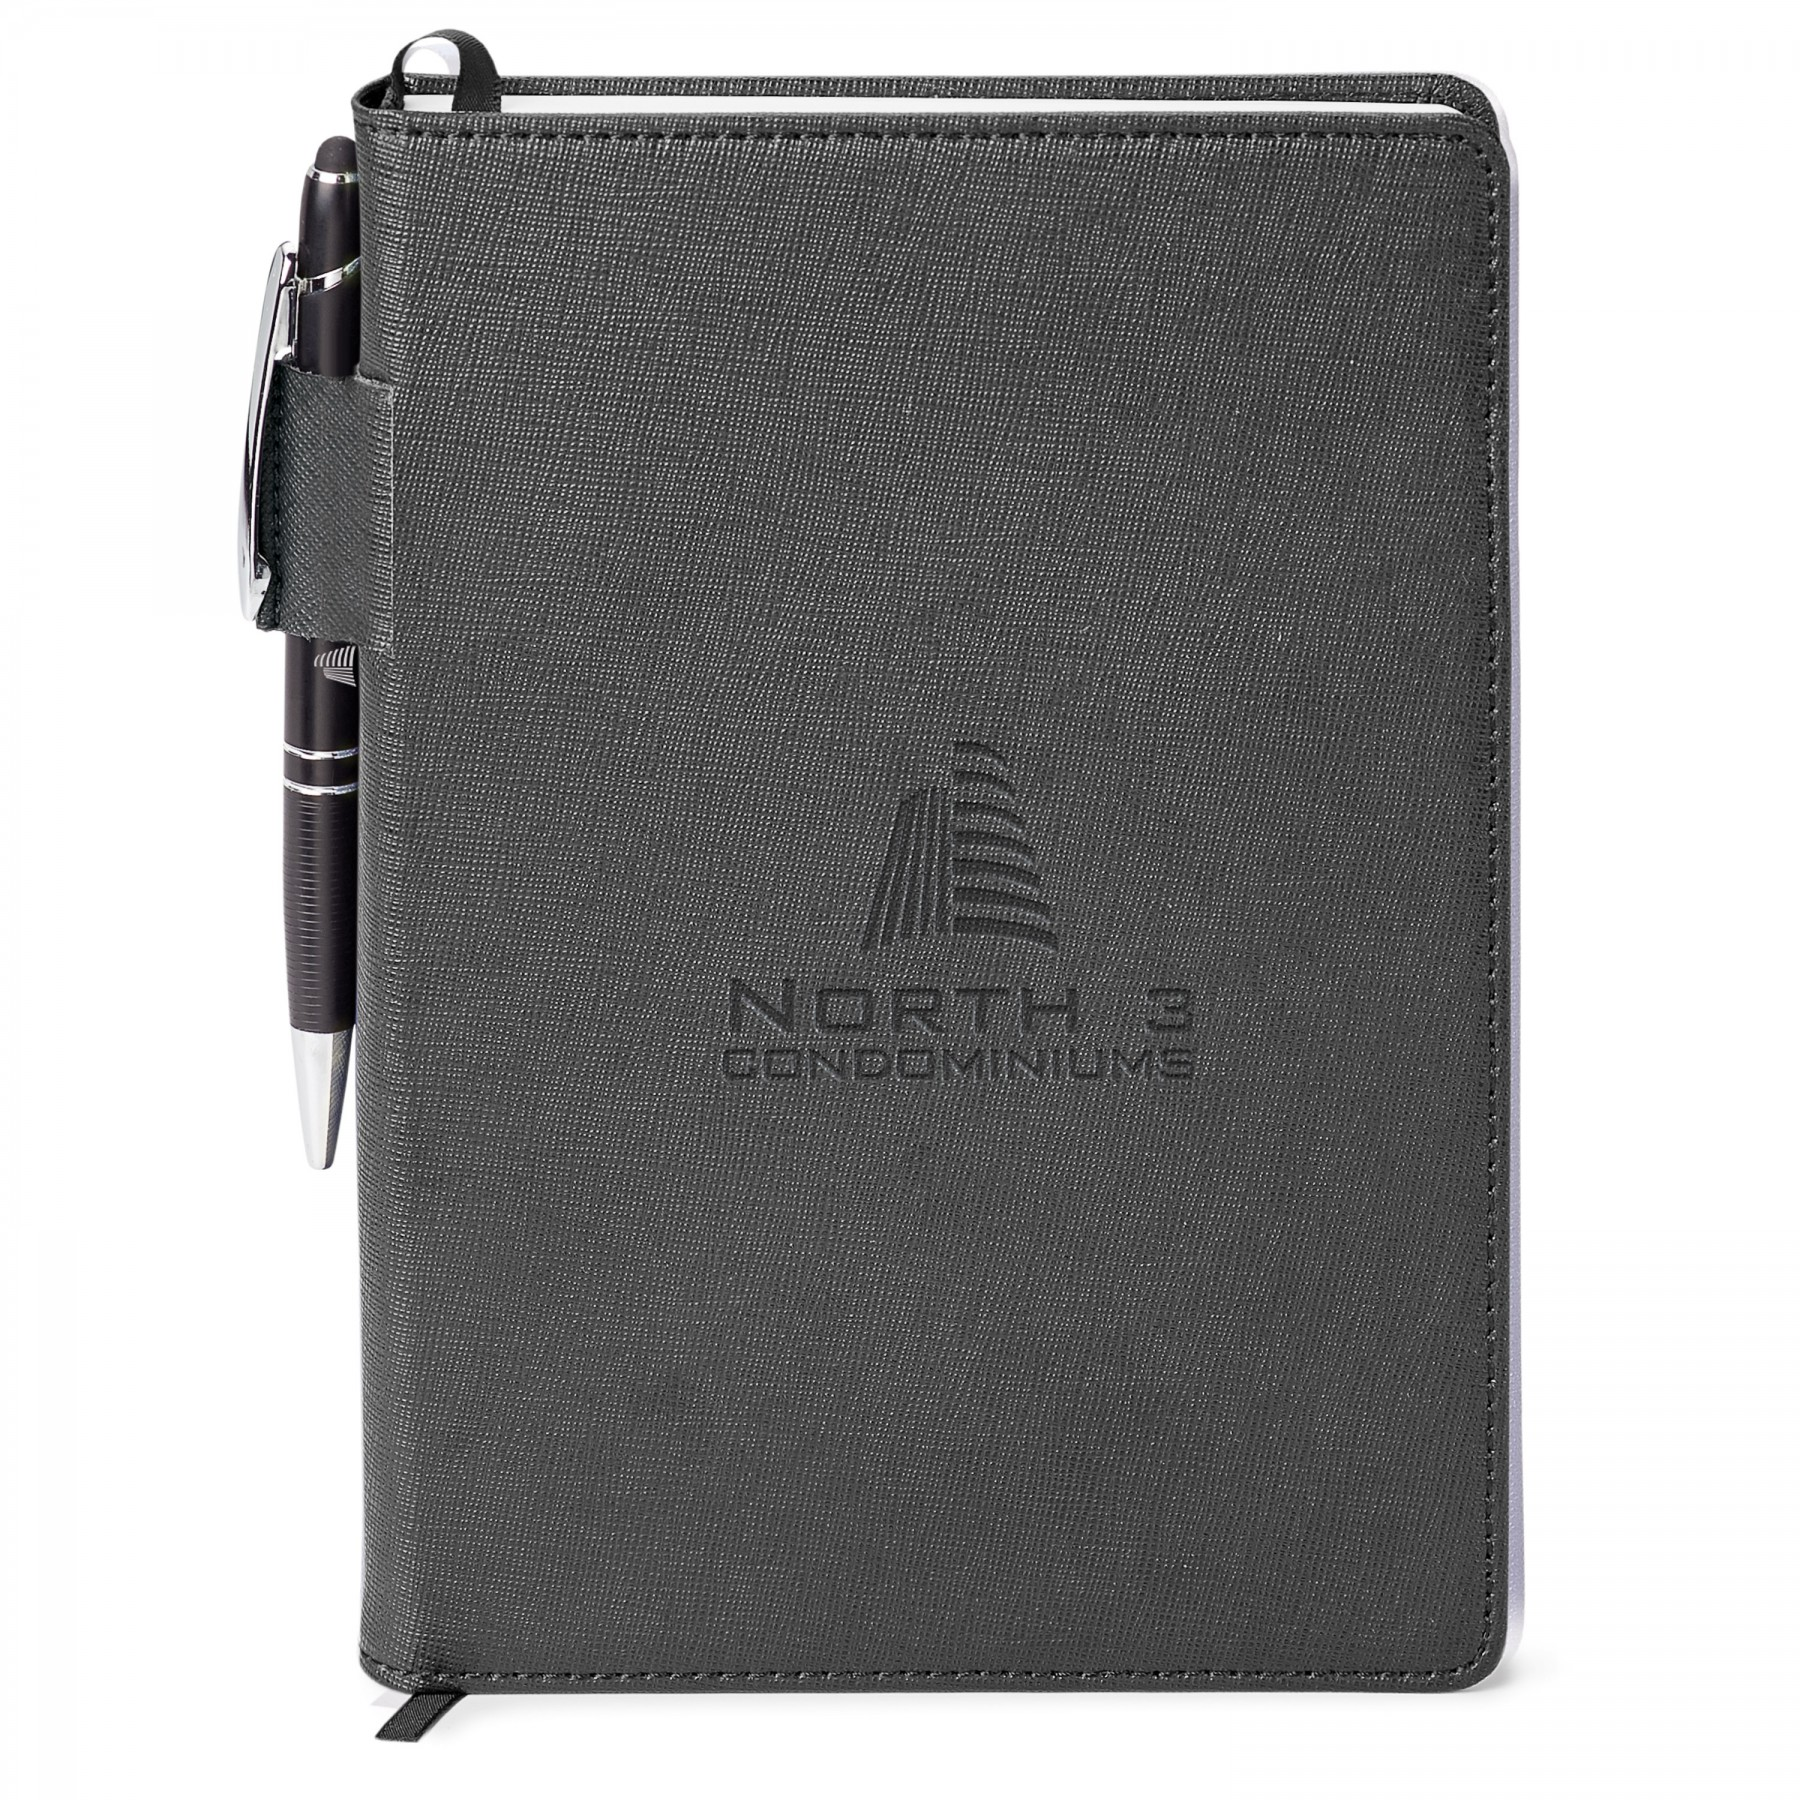 Genuine Leather Non-Refillable Journal Combo, GF4668, Laser Engraved